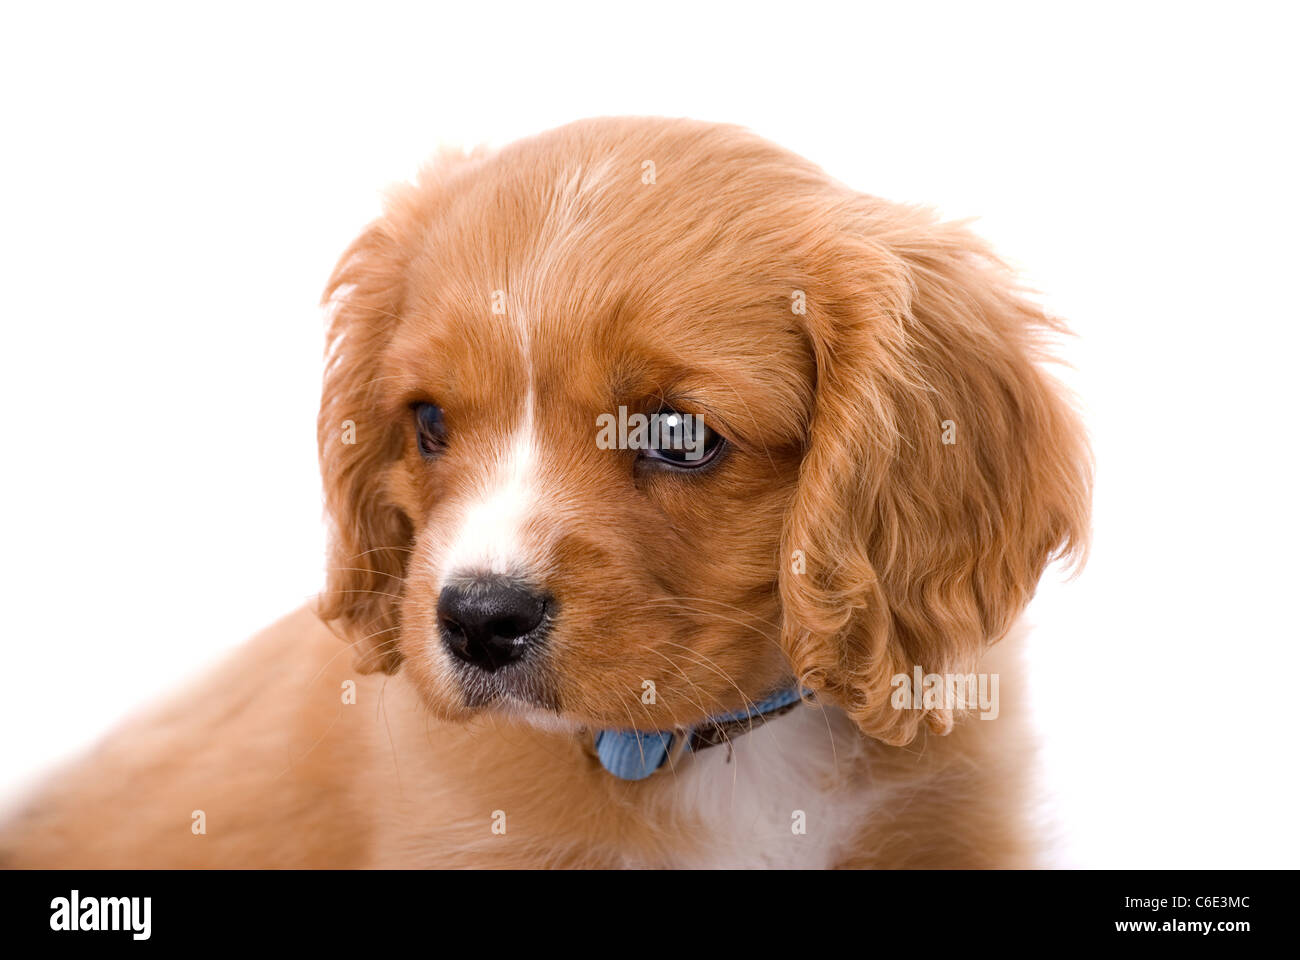 Most Inspiring Cavalier Brown Adorable Dog - an-adorable-6-week-old-king-charles-cavalier-puppy-gazing-camera-left-C6E3MC  Trends_246881  .jpg